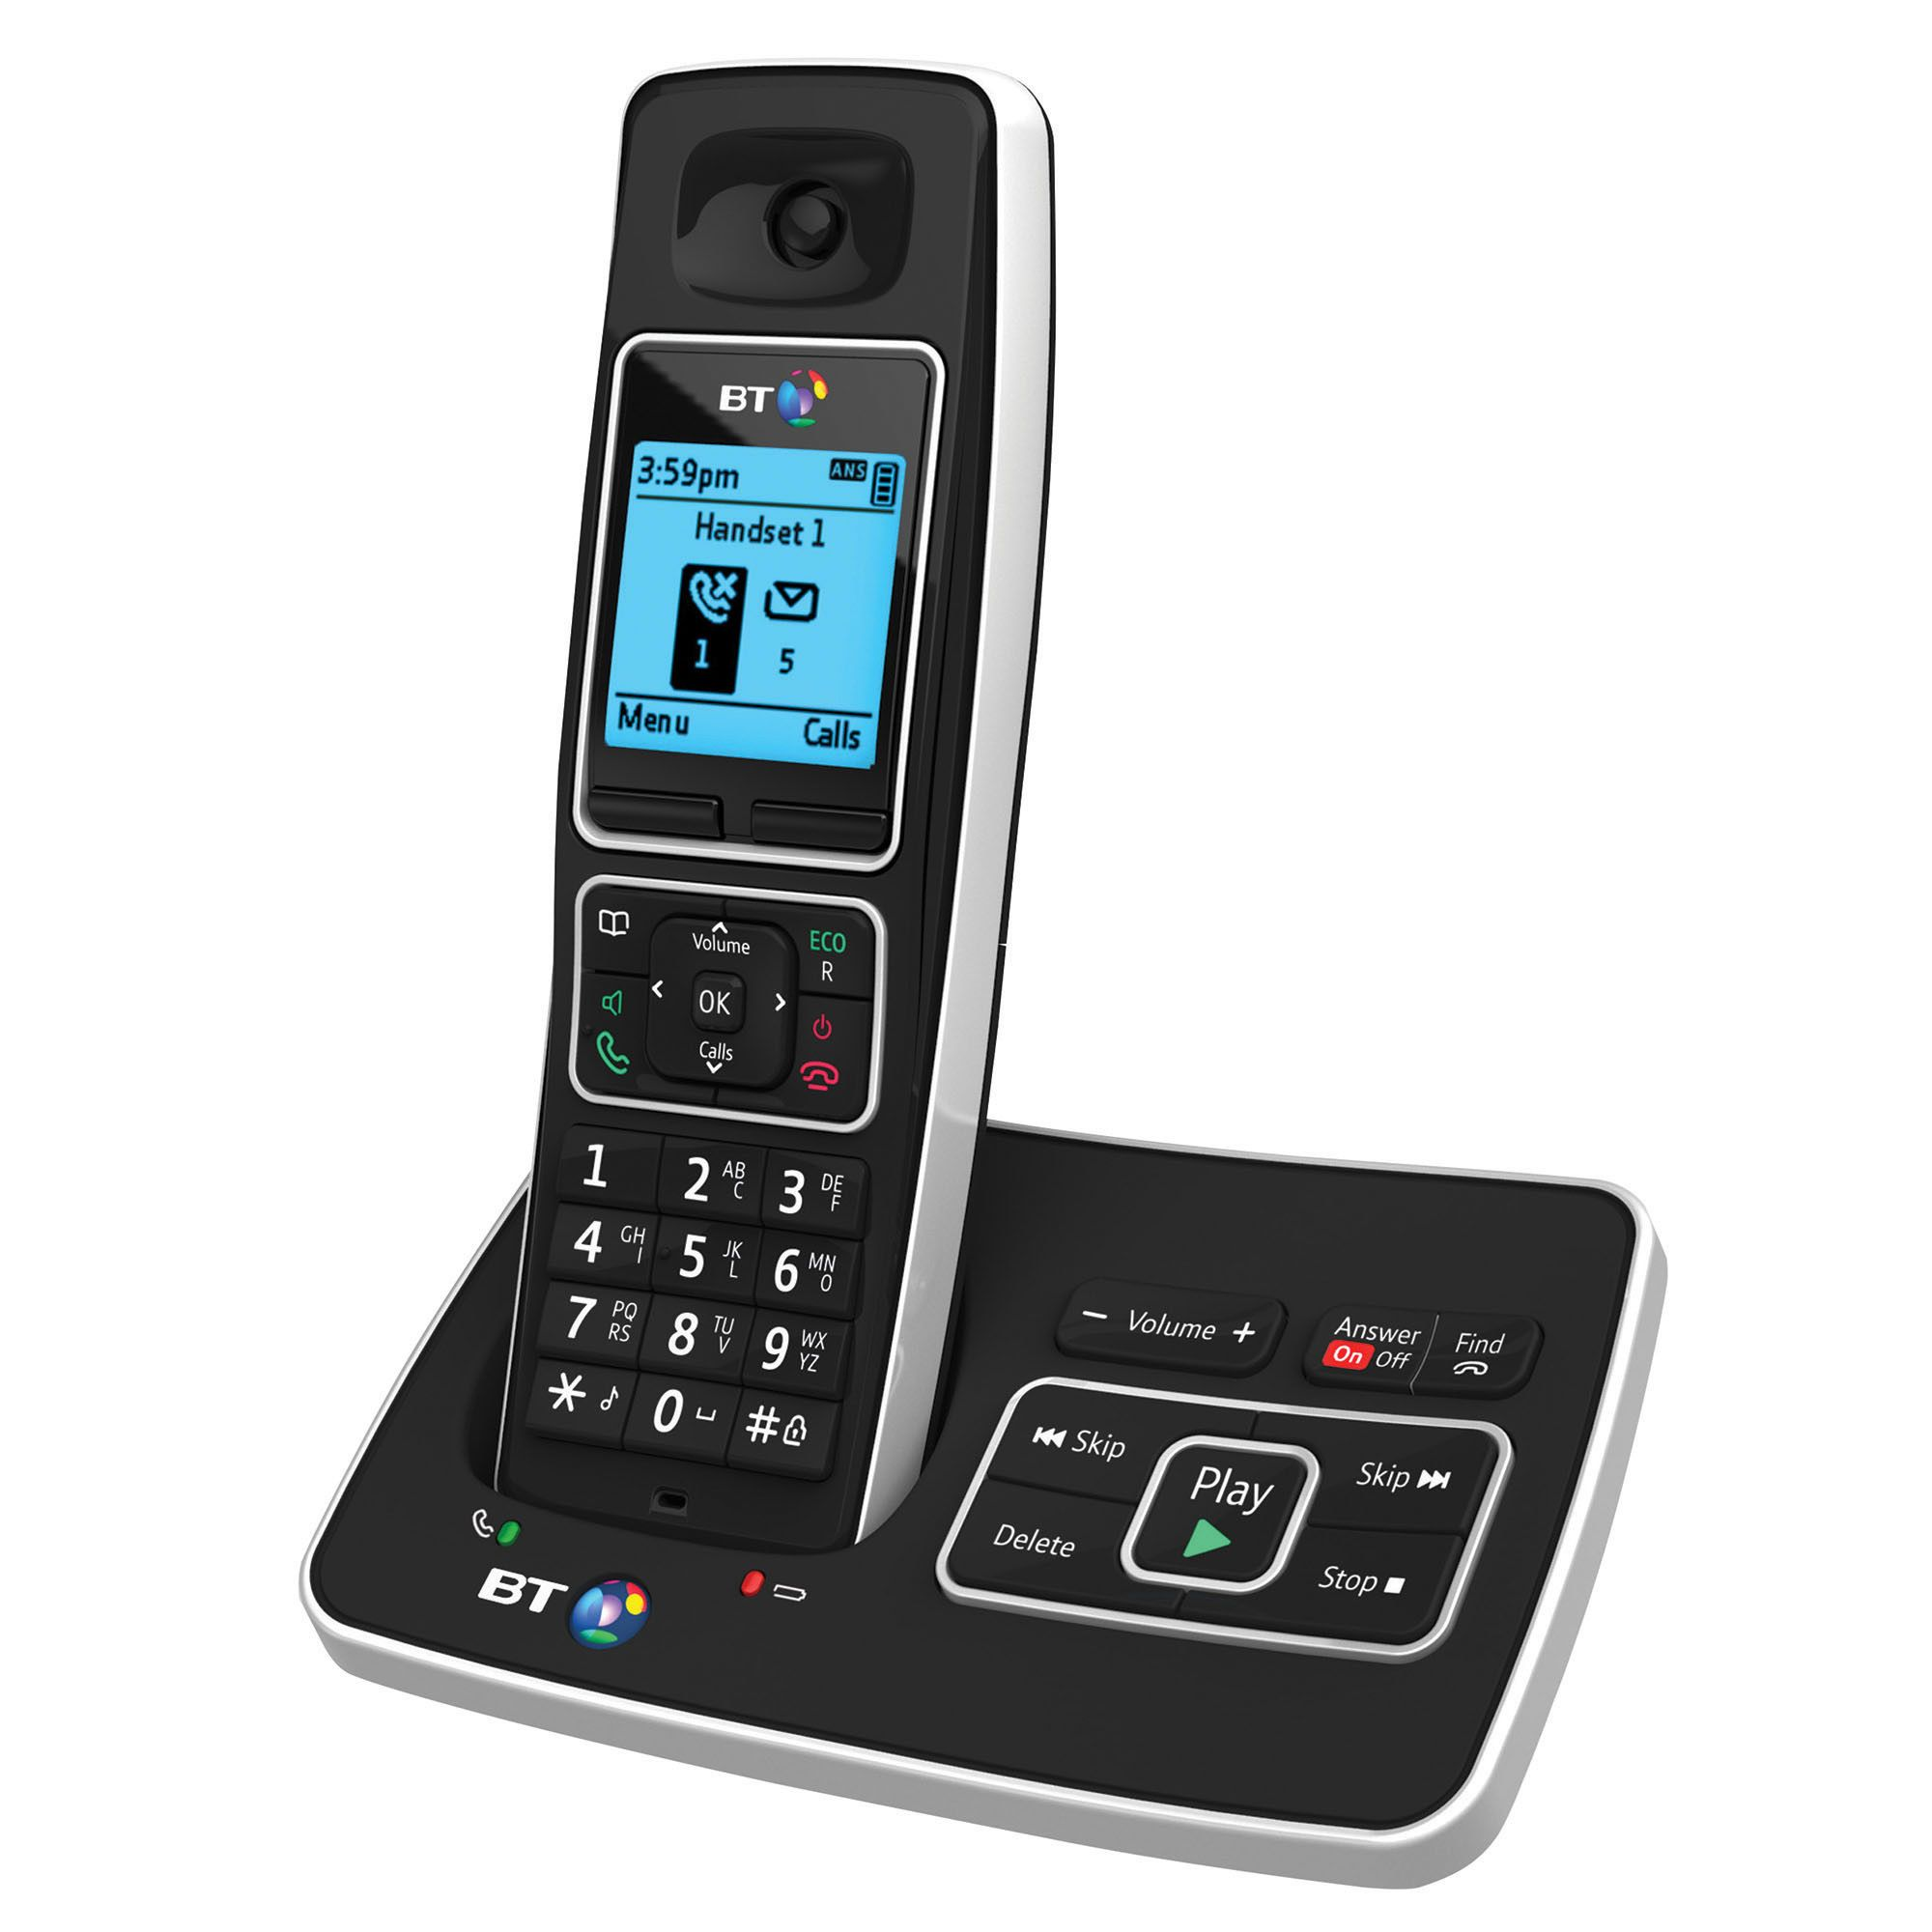 Bt 6500 Black Cordless Digital Telephone With Answering Machine - Single Handset